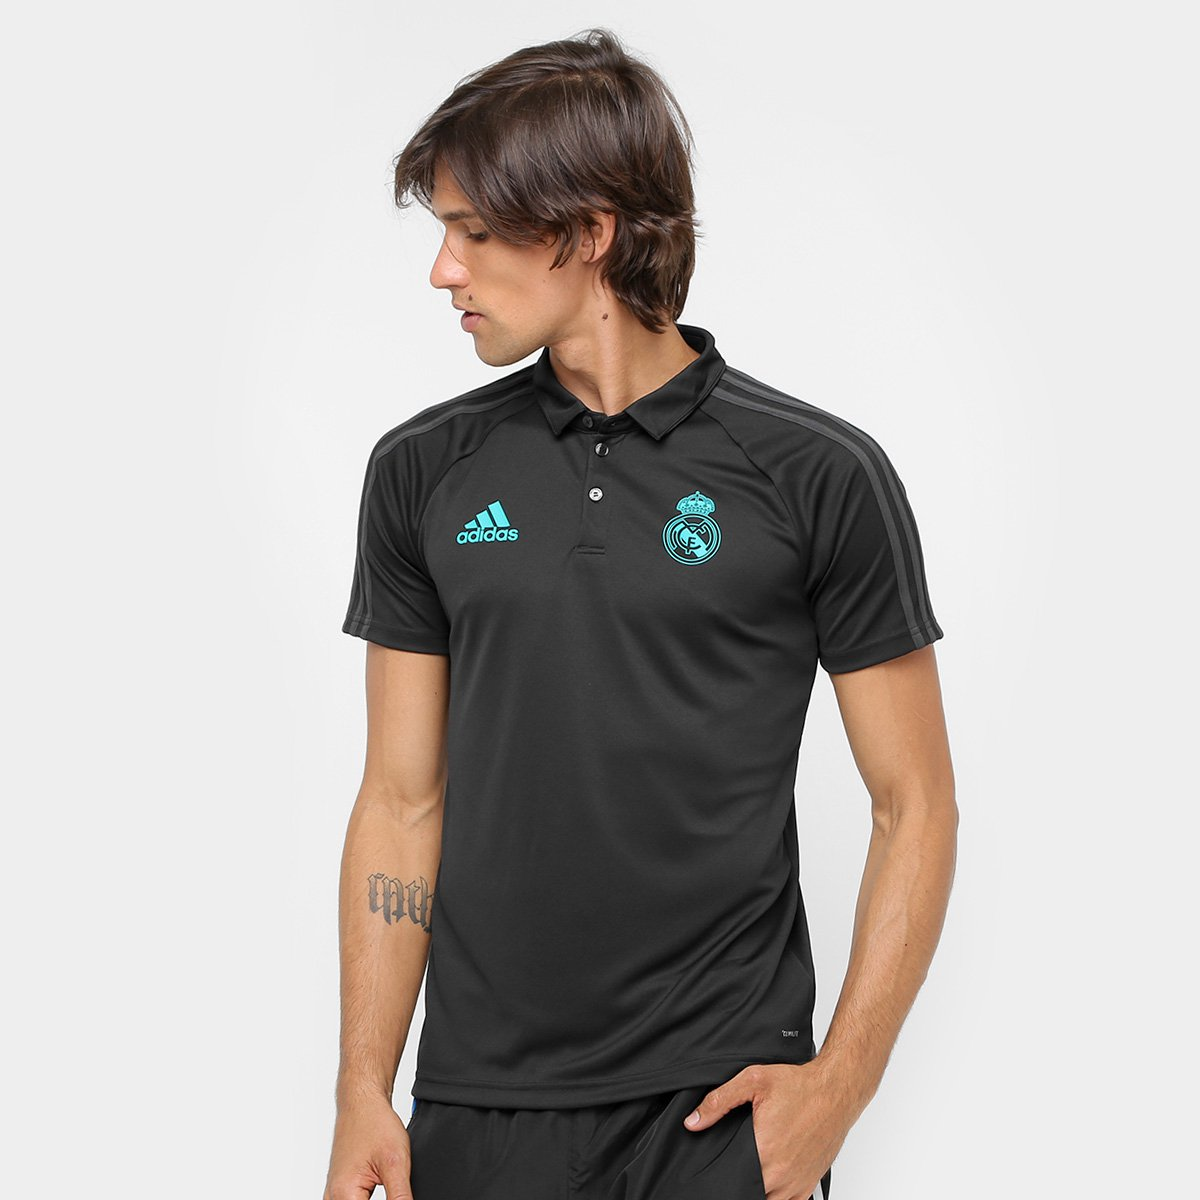 dc5851694170 Camisa Polo Adidas Real Madrid Viagem | Allianz Parque Shop